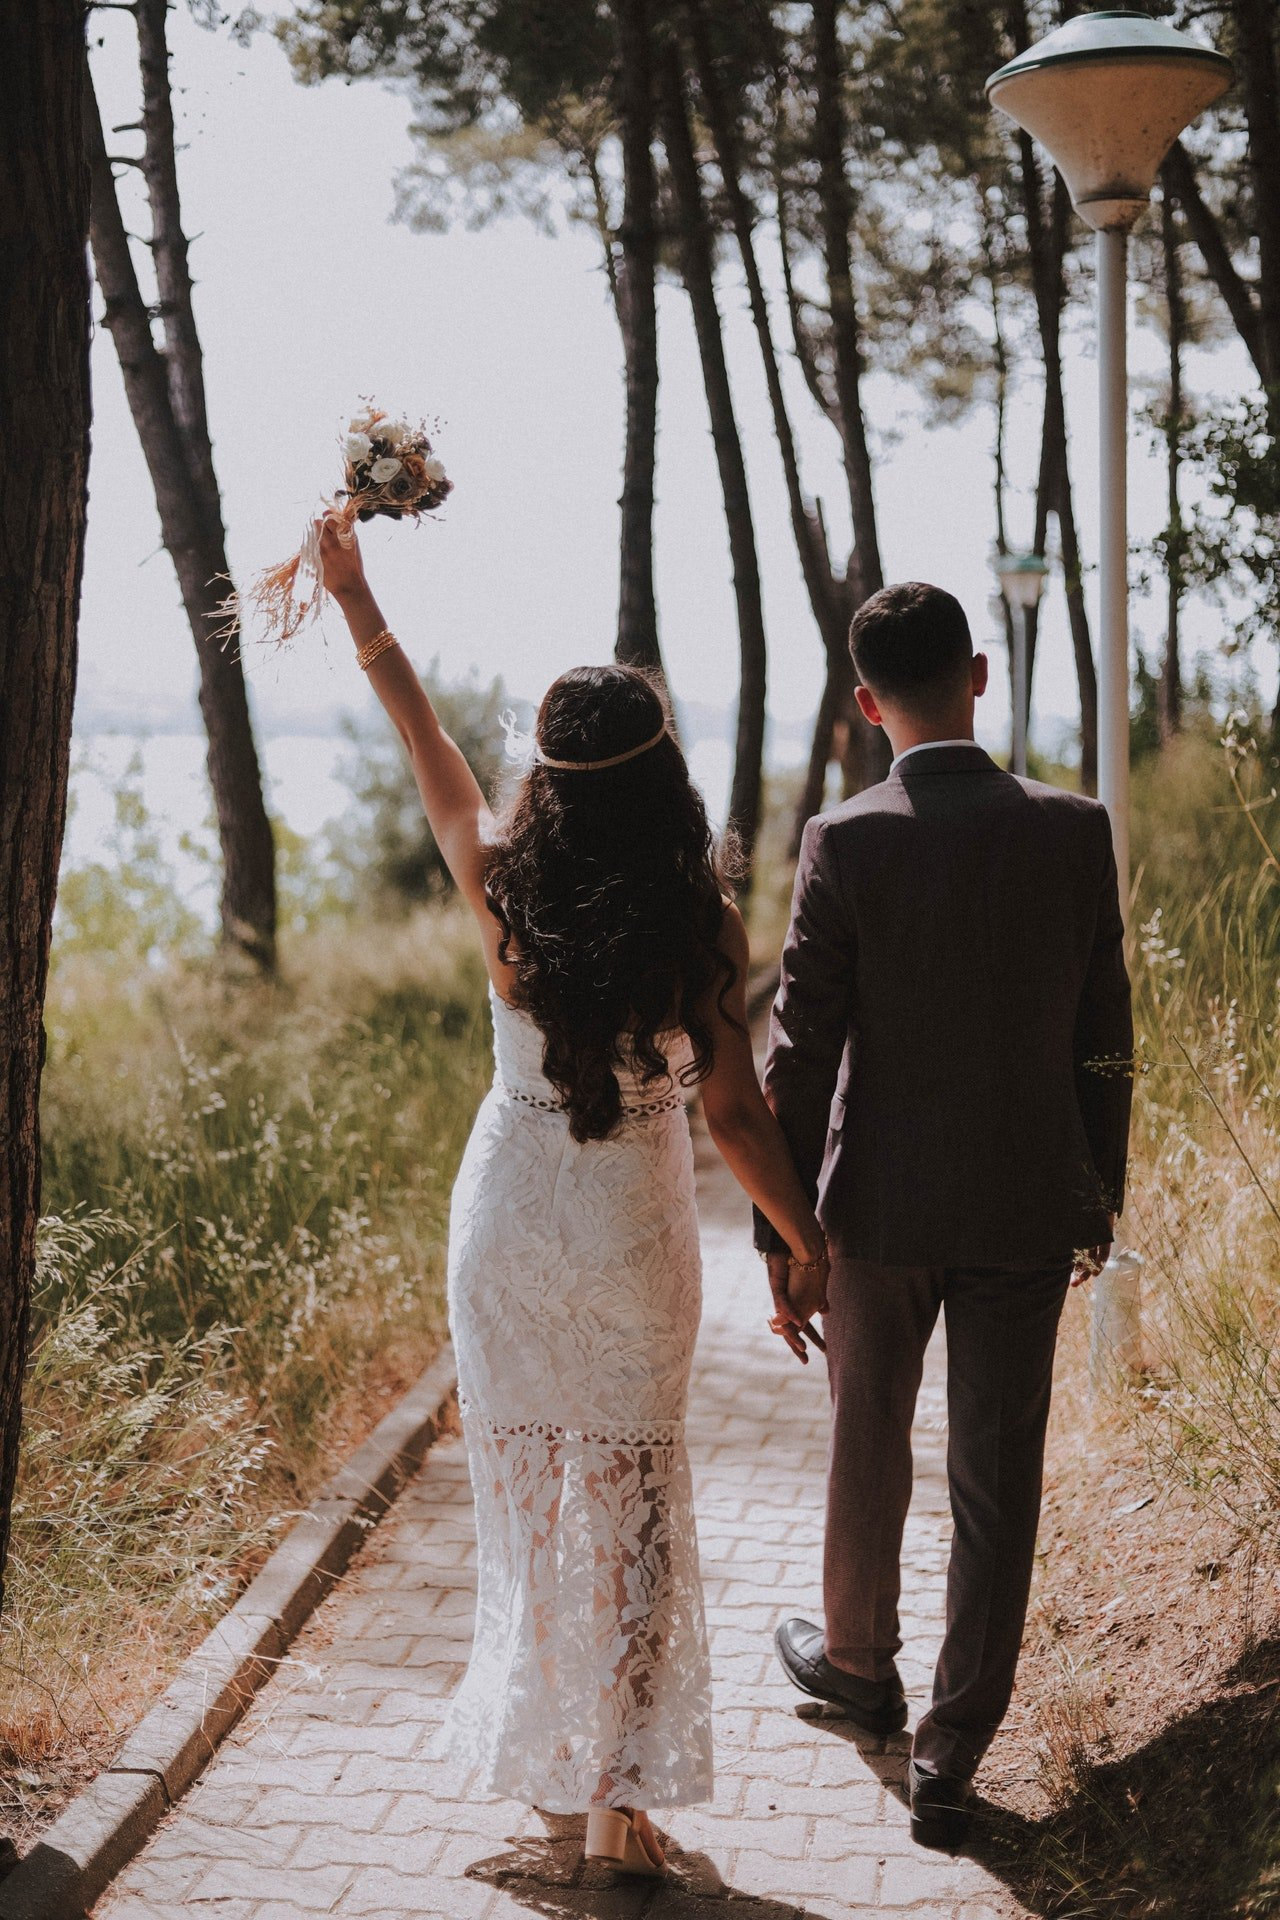 A couple walking in the woods in their wedding outfits.   Photo: Pexels